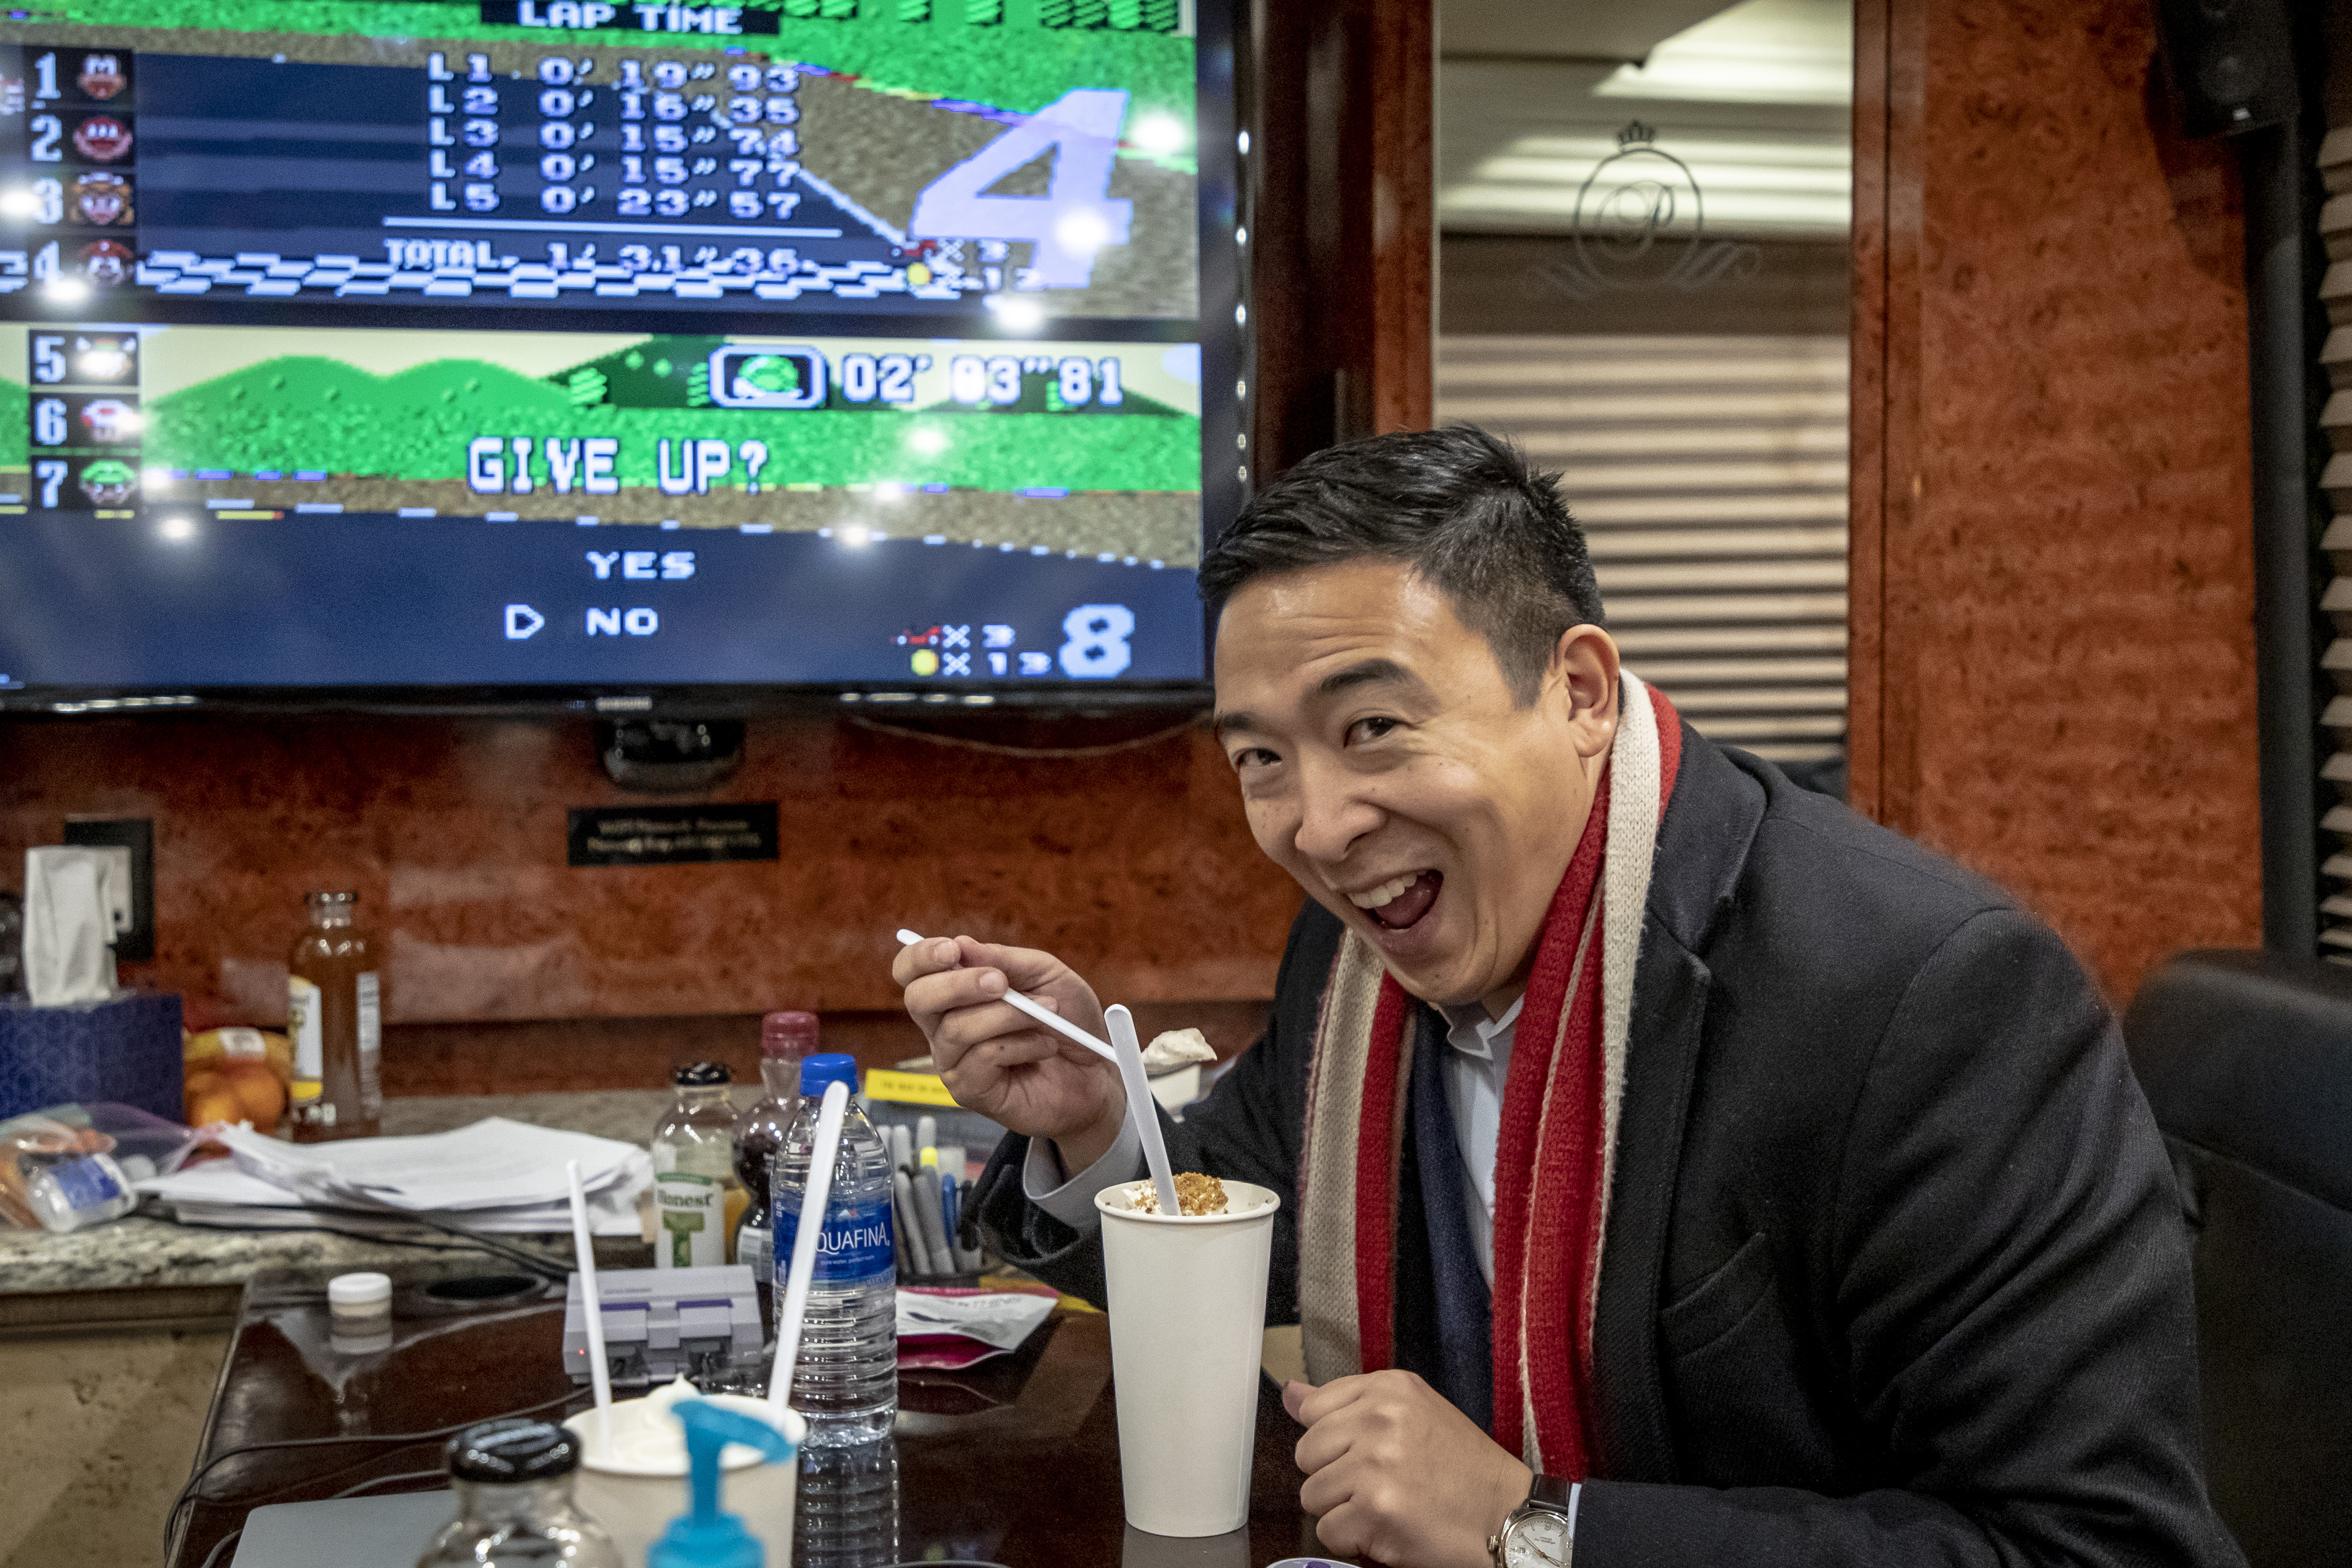 Man holds spoon containing ice cream up with his right hand, alongside a milkshake glass, TV on in the background.